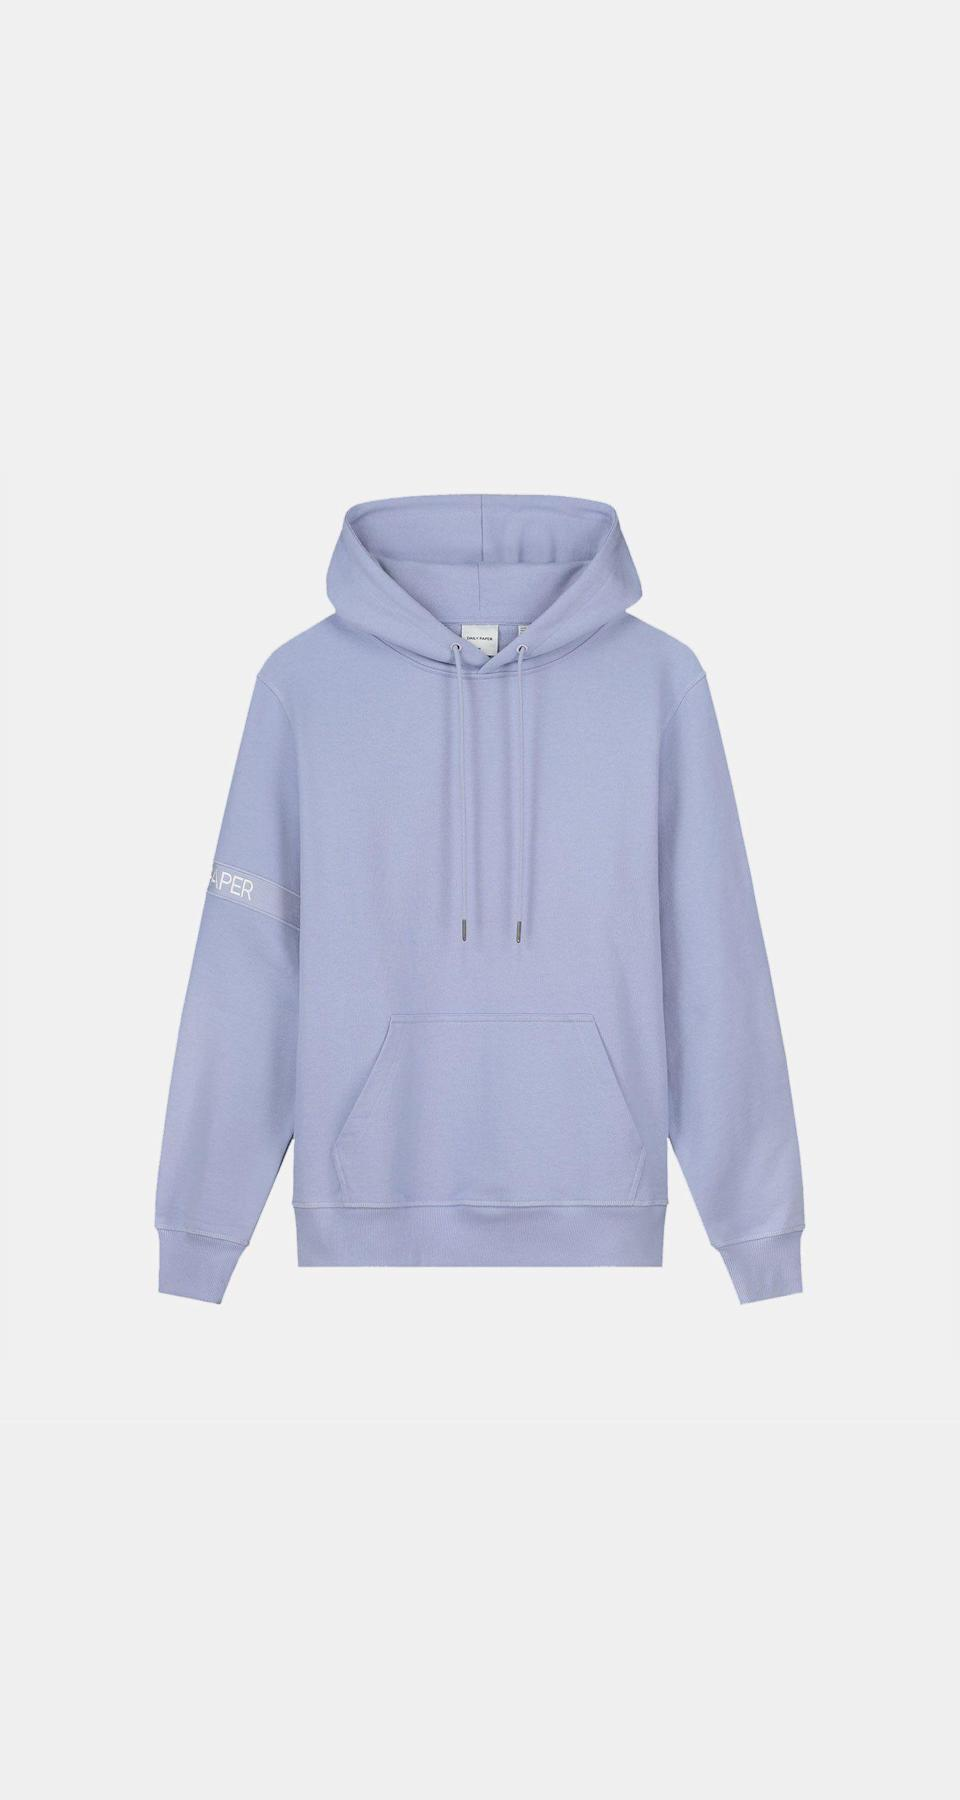 """<p><strong>Daily Paper</strong></p><p>dailypaperclothing.com</p><p><strong>121.00</strong></p><p><a href=""""https://www.dailypaperclothing.com/collections/captain-hoodies/products/jacaranda-purple-captain-hoody"""" rel=""""nofollow noopener"""" target=""""_blank"""" data-ylk=""""slk:Shop Now"""" class=""""link rapid-noclick-resp"""">Shop Now</a></p><p>Don't you know it's shorts and hoodies season?</p>"""